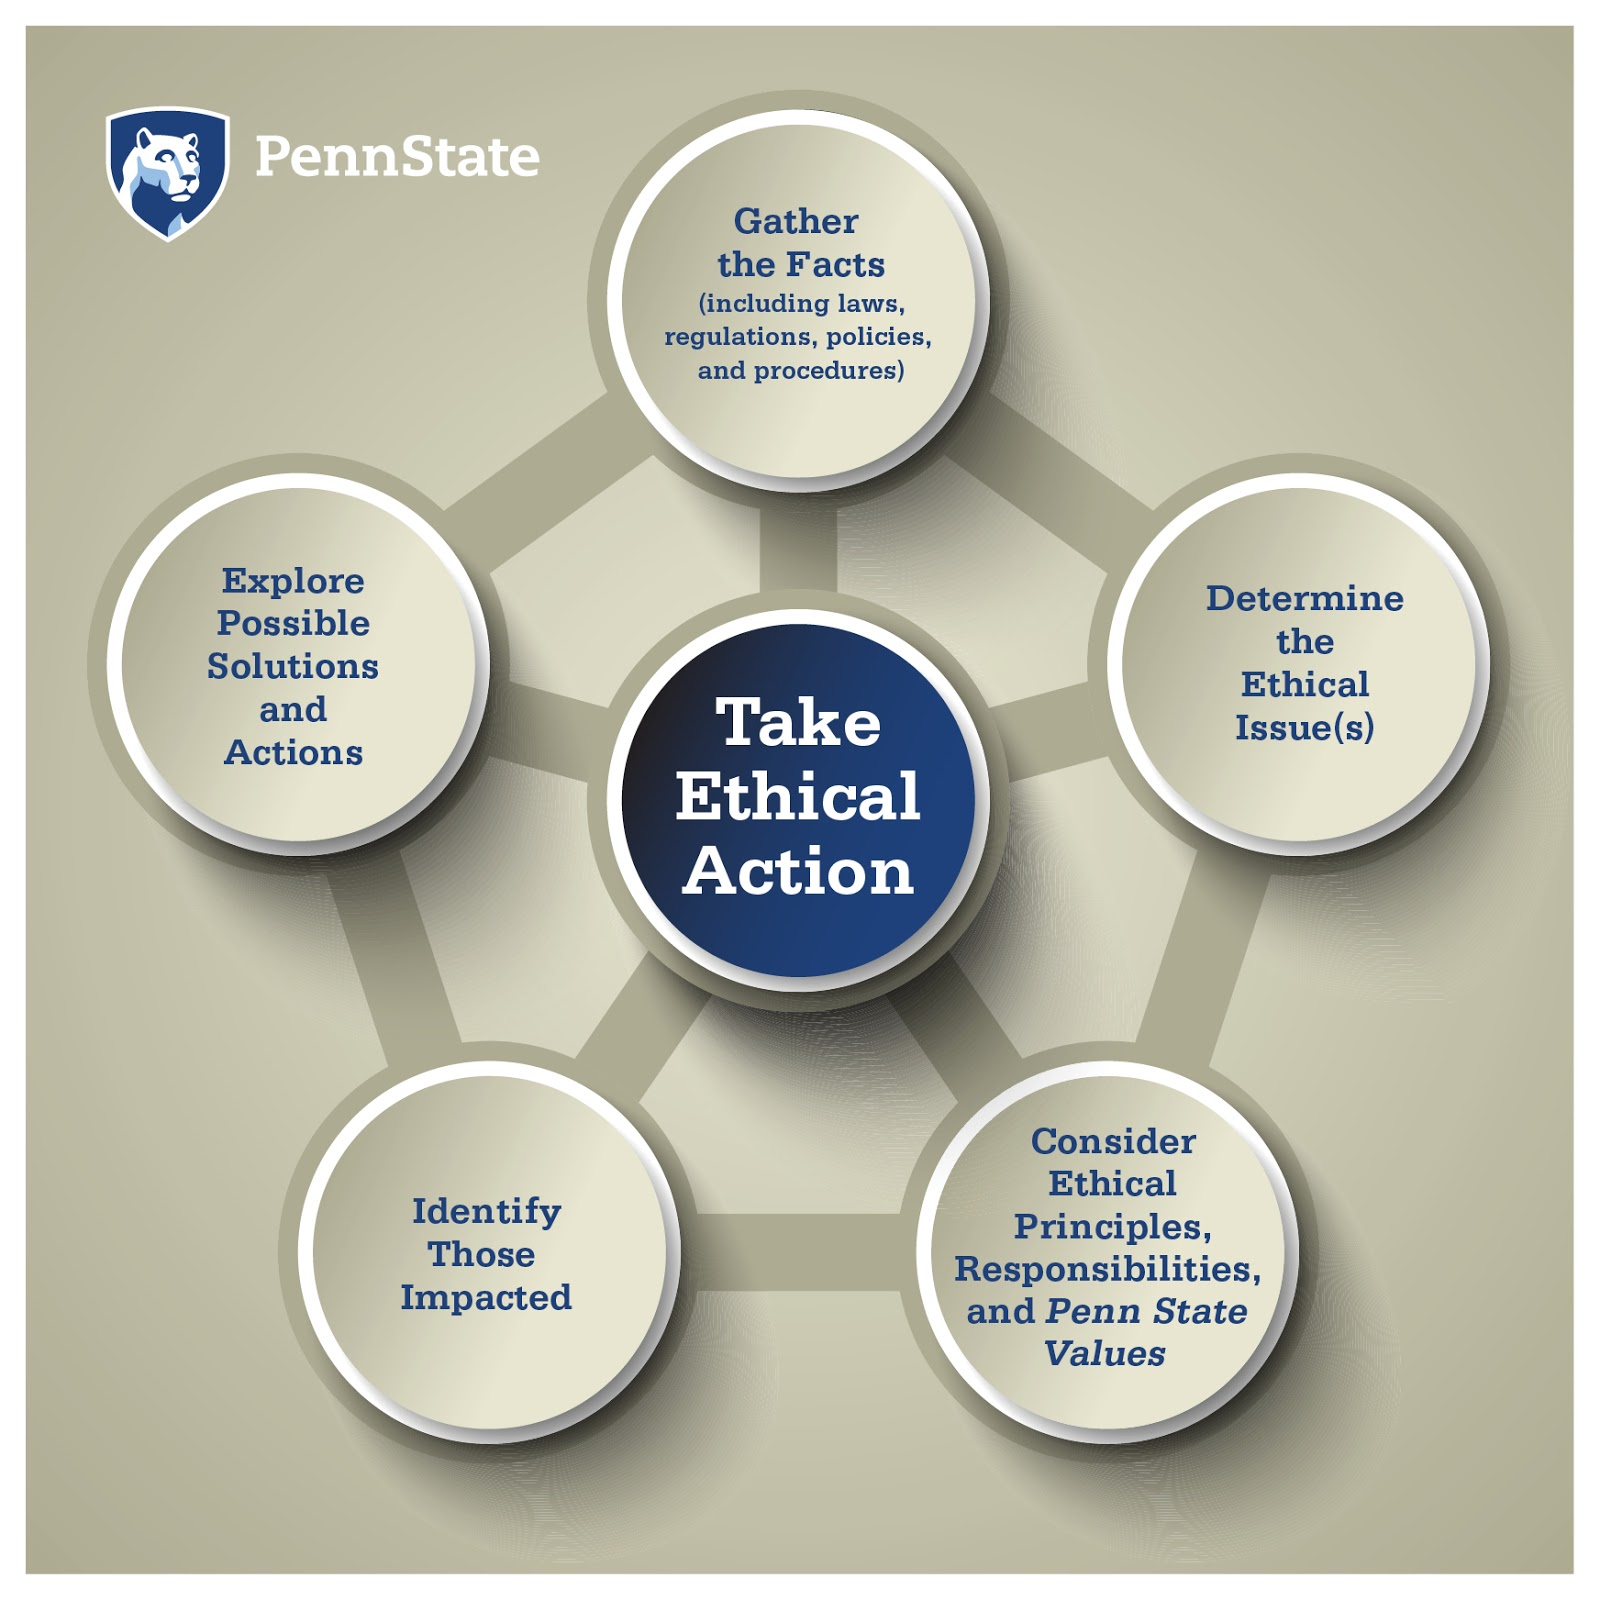 Leading By Example Ethical Decision Making At Penn State Guiding Questions And High Level The University